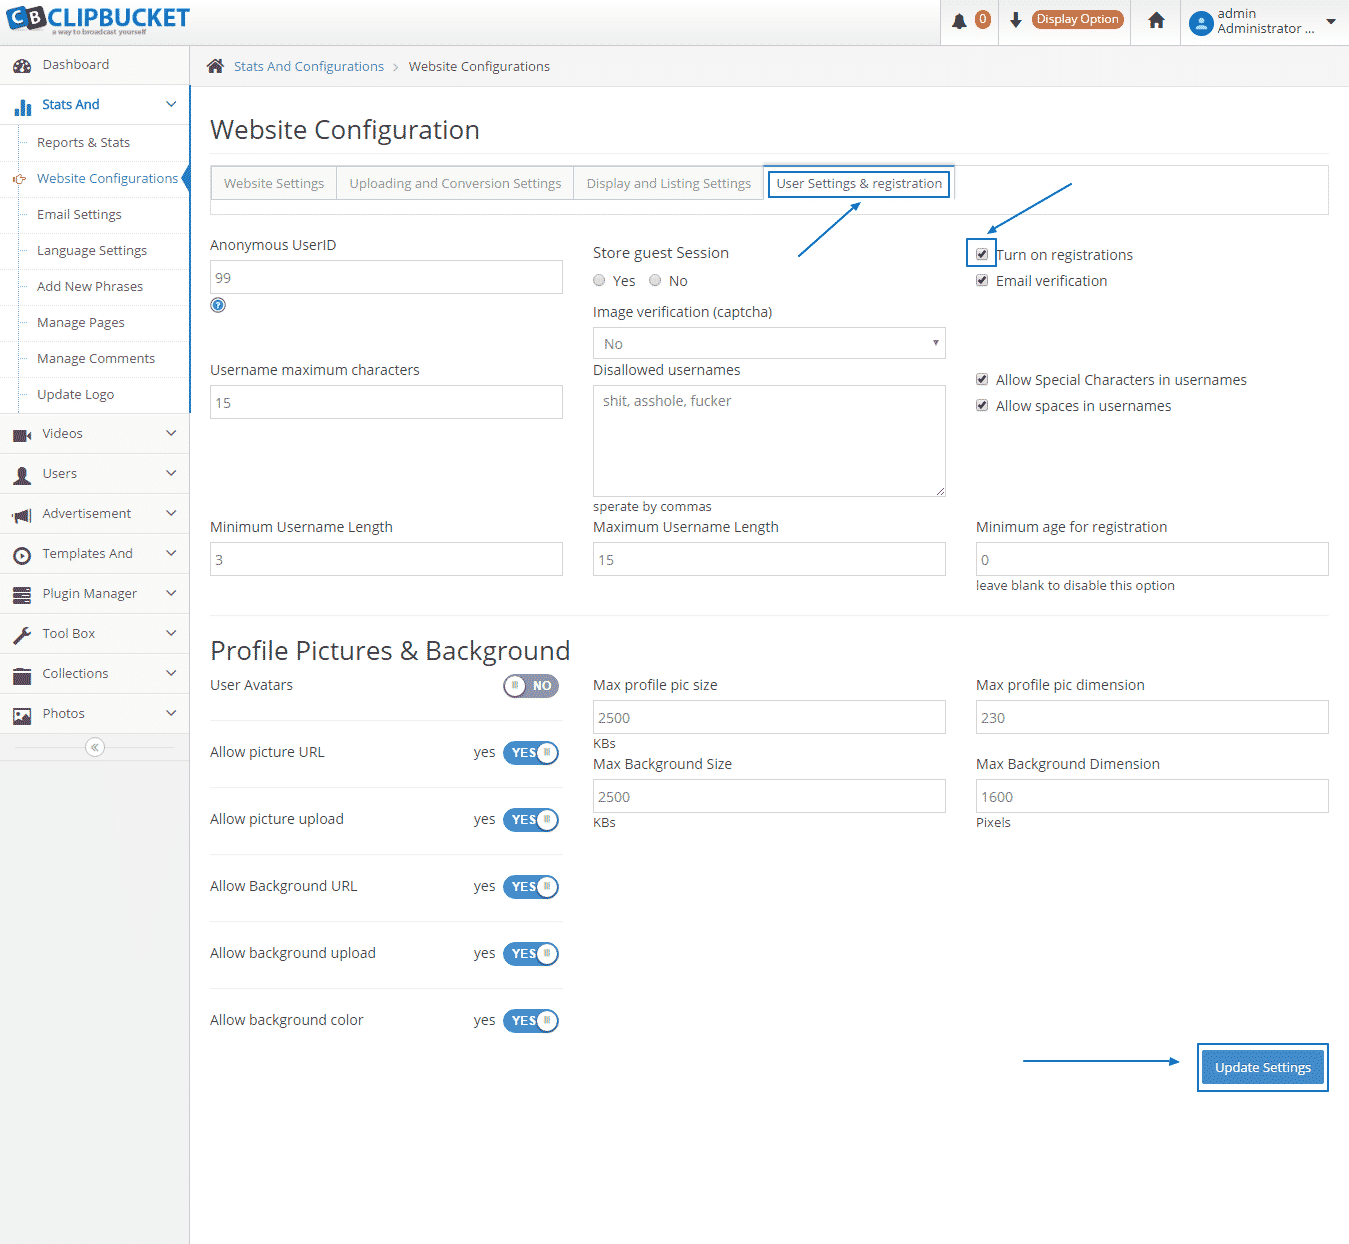 HOW TO MANAGE THE BASIC SETTINGS OF CLIPBUCKET?